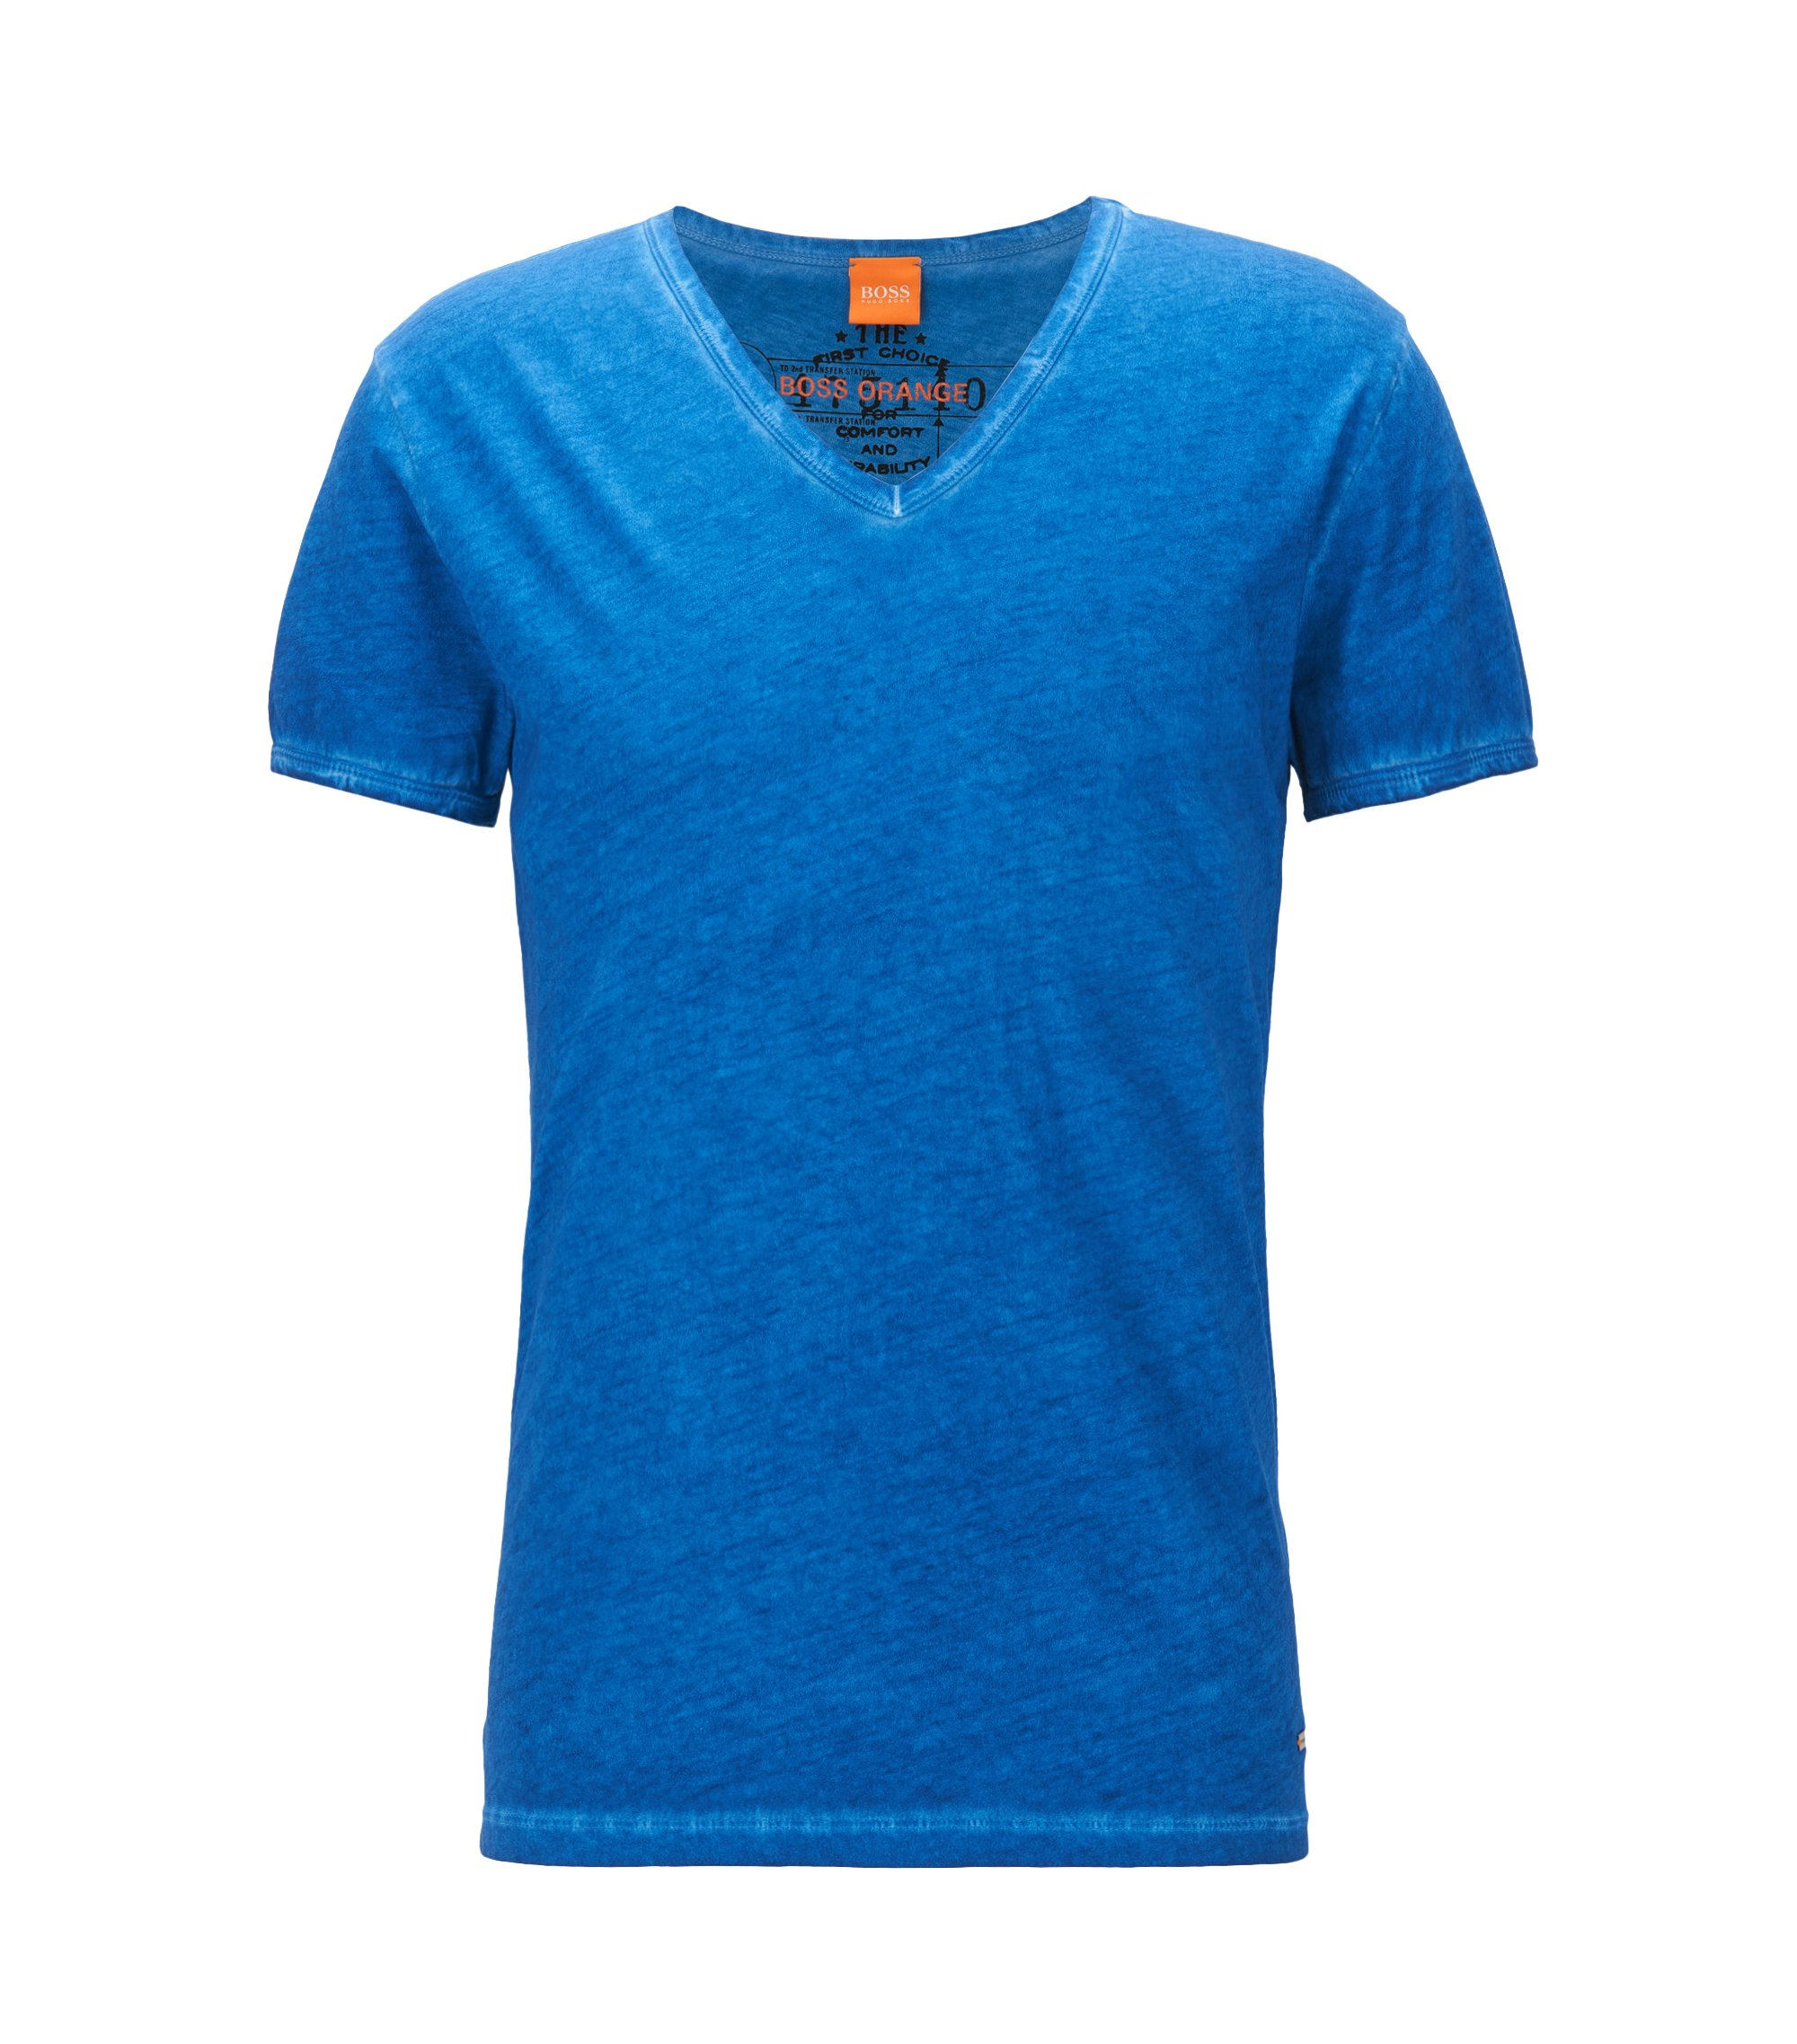 T-shirt Regular Fit en coton garment dyed, Bleu